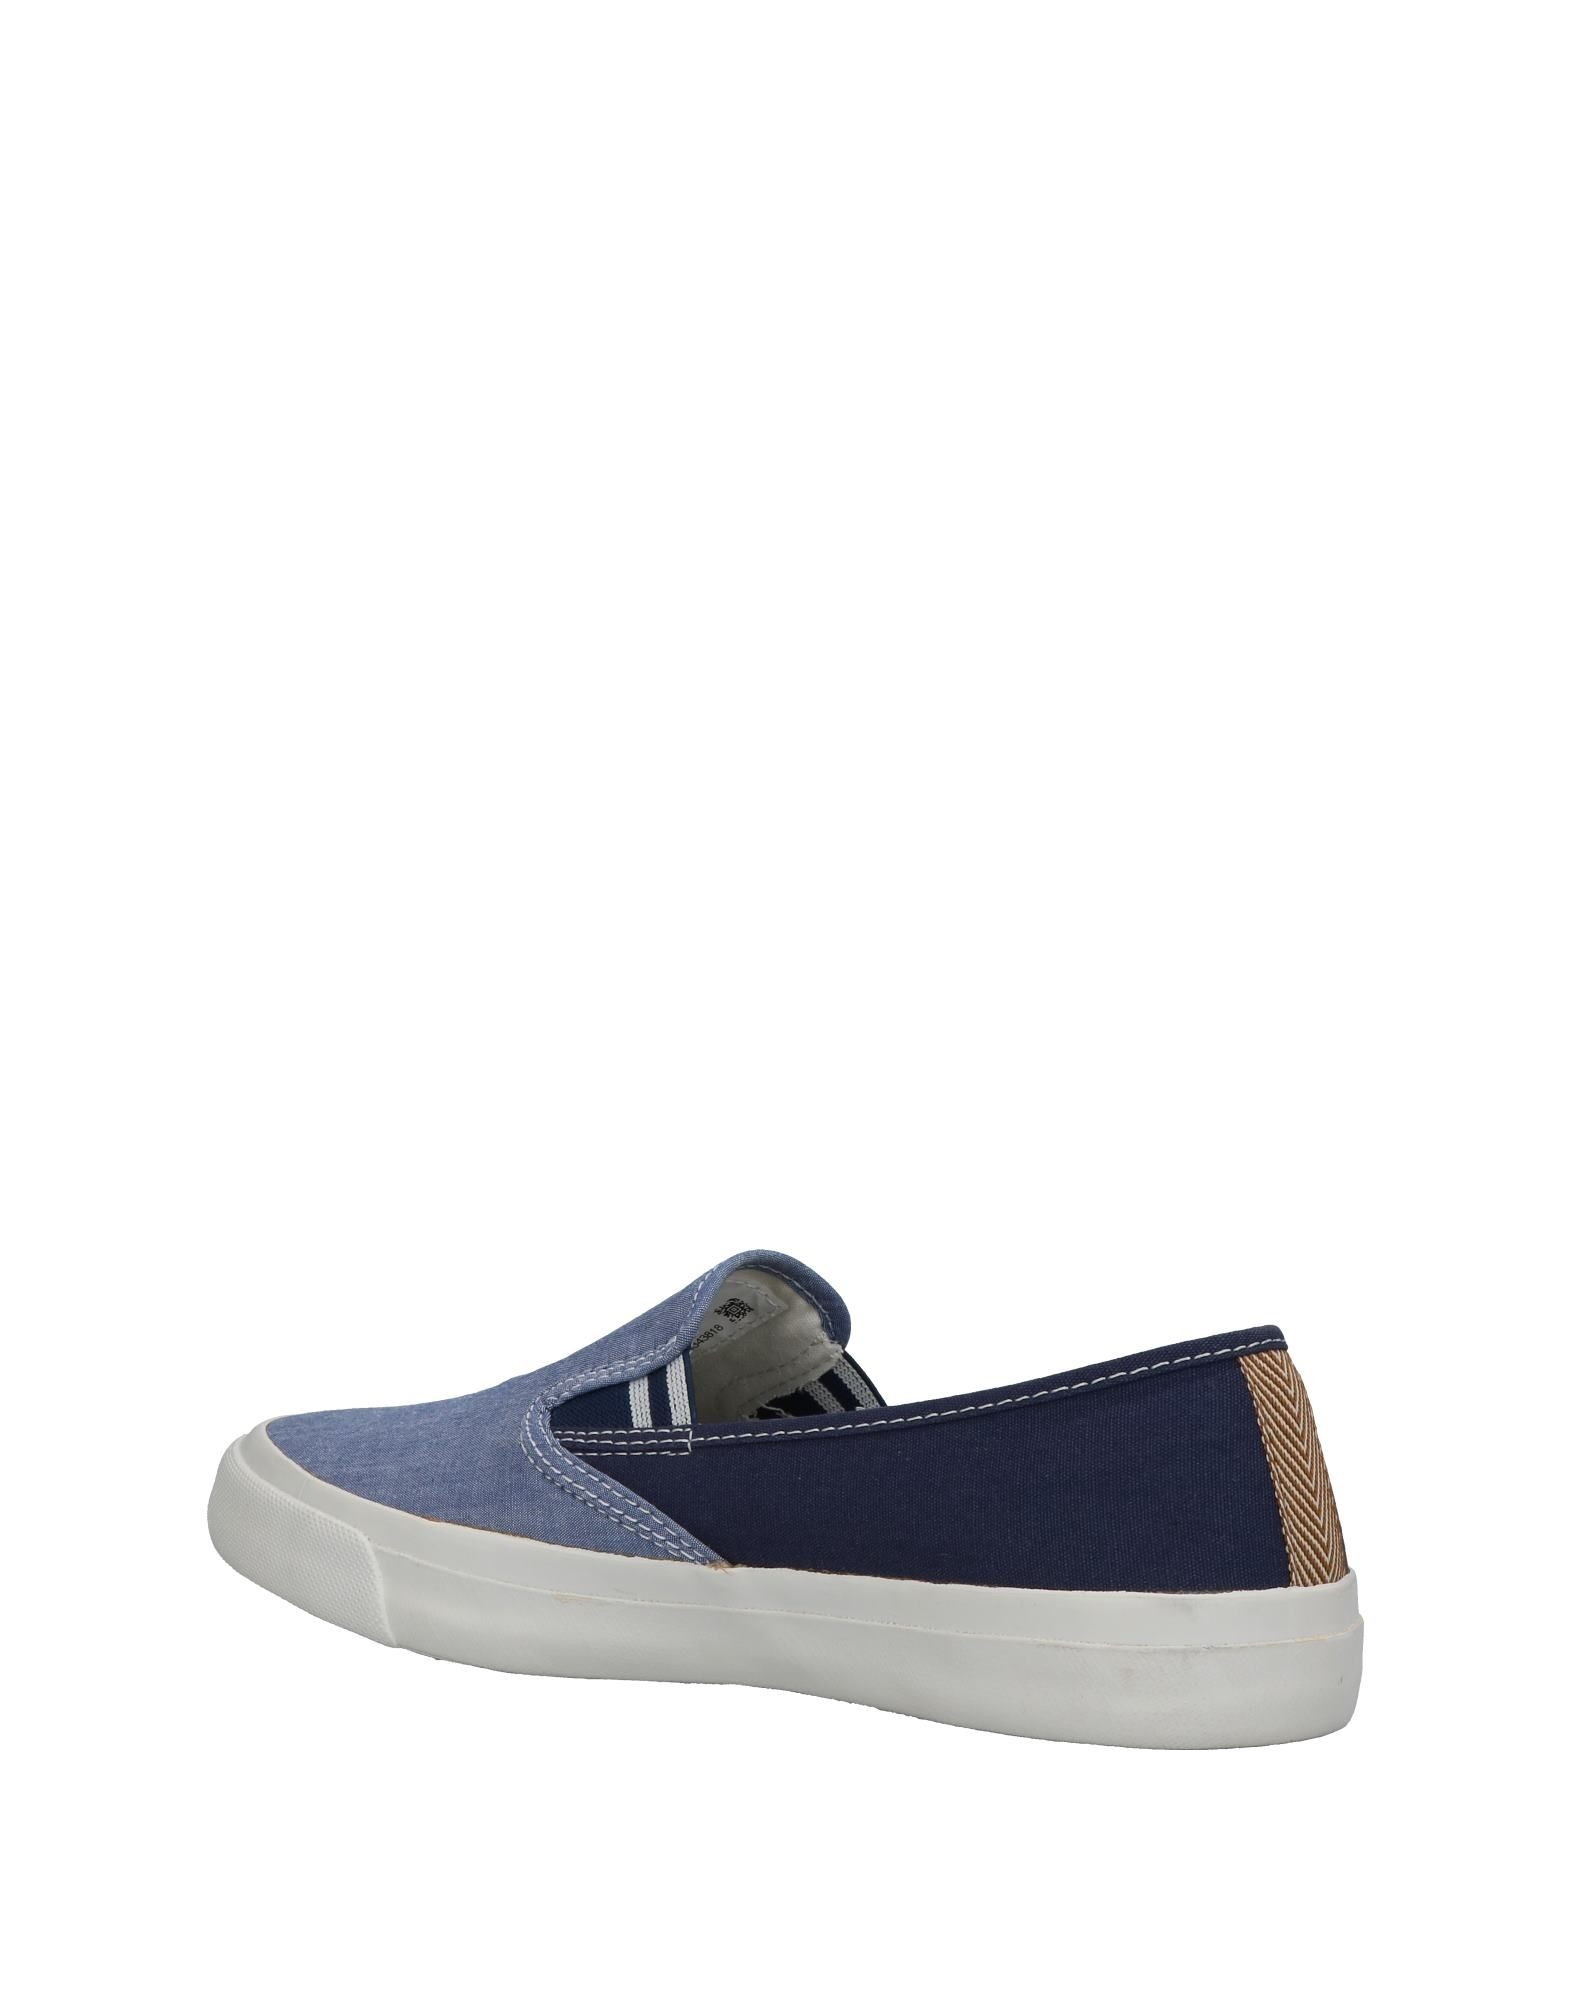 Fred Perry Sneakers - - - Men Fred Perry Sneakers online on  Canada - 11392270QD 5716ec